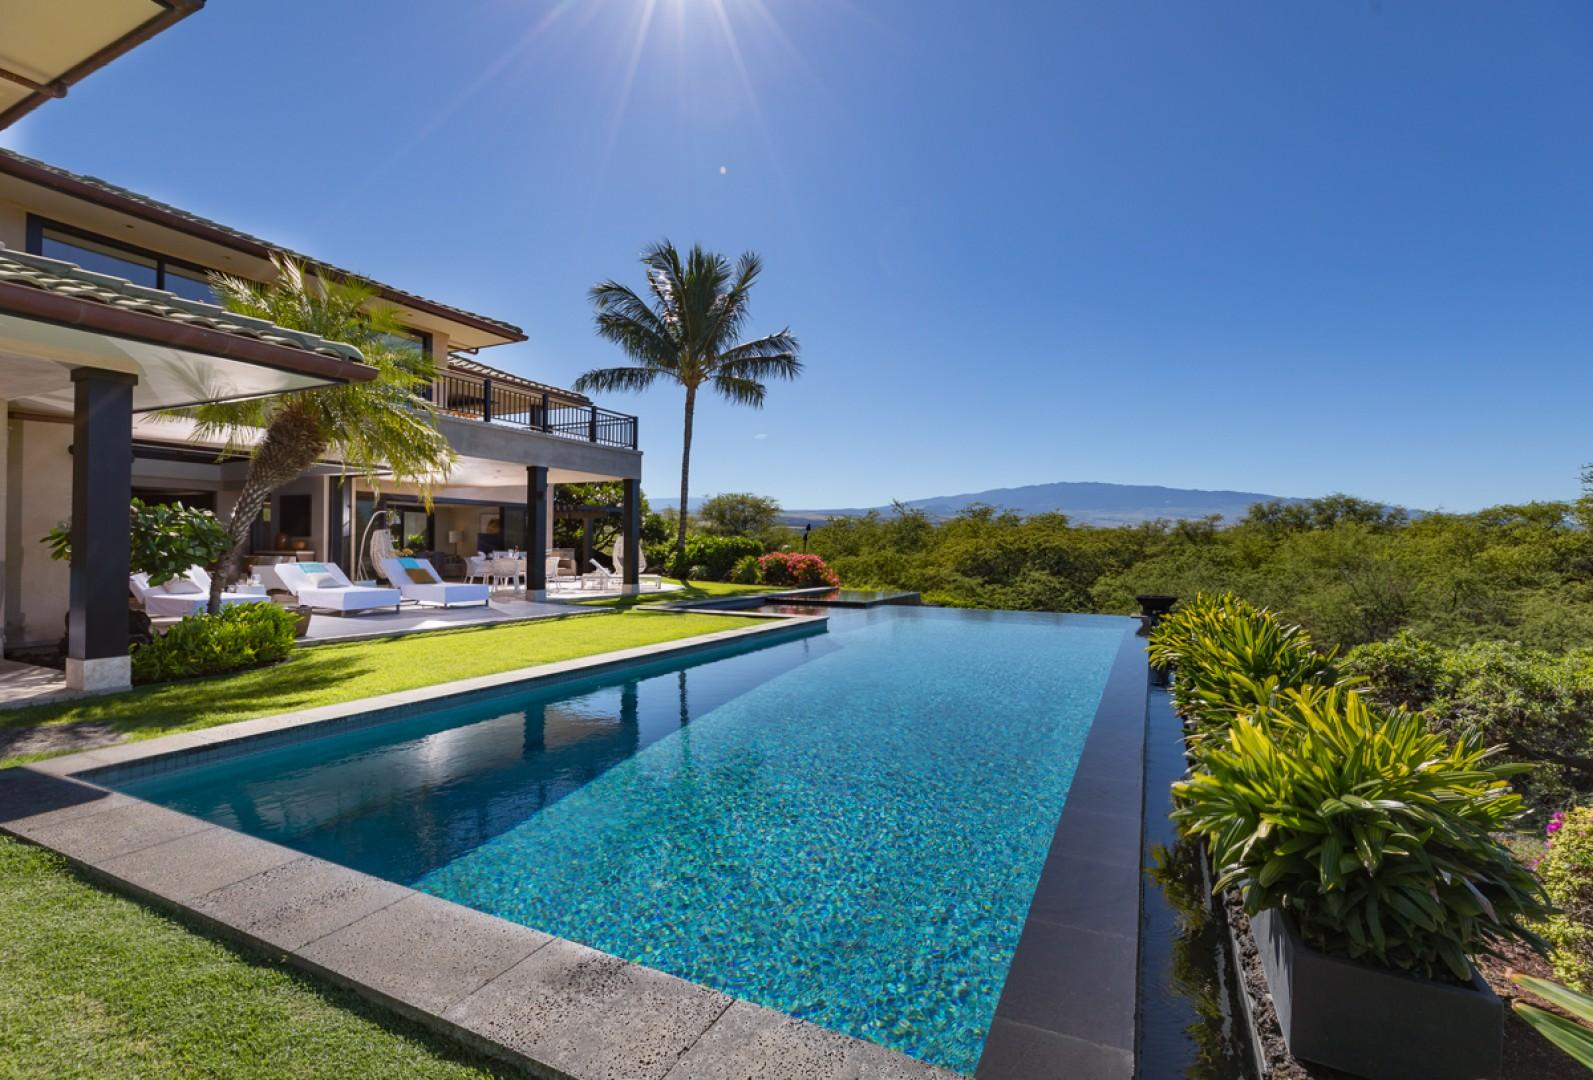 Plunge into the private pool